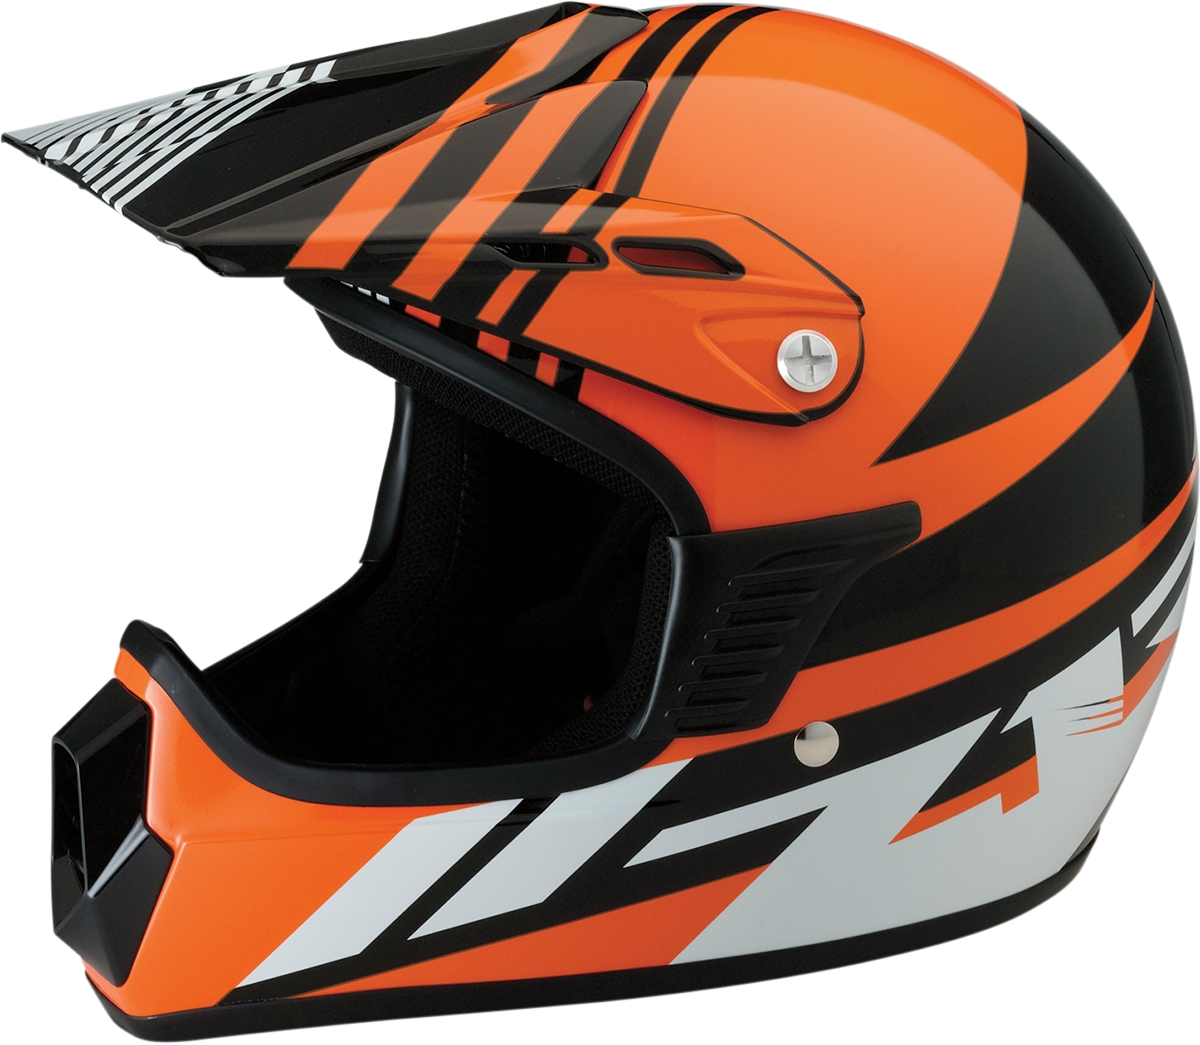 z1r kids roost se motocross dirt bike motorcycle helmet. Black Bedroom Furniture Sets. Home Design Ideas